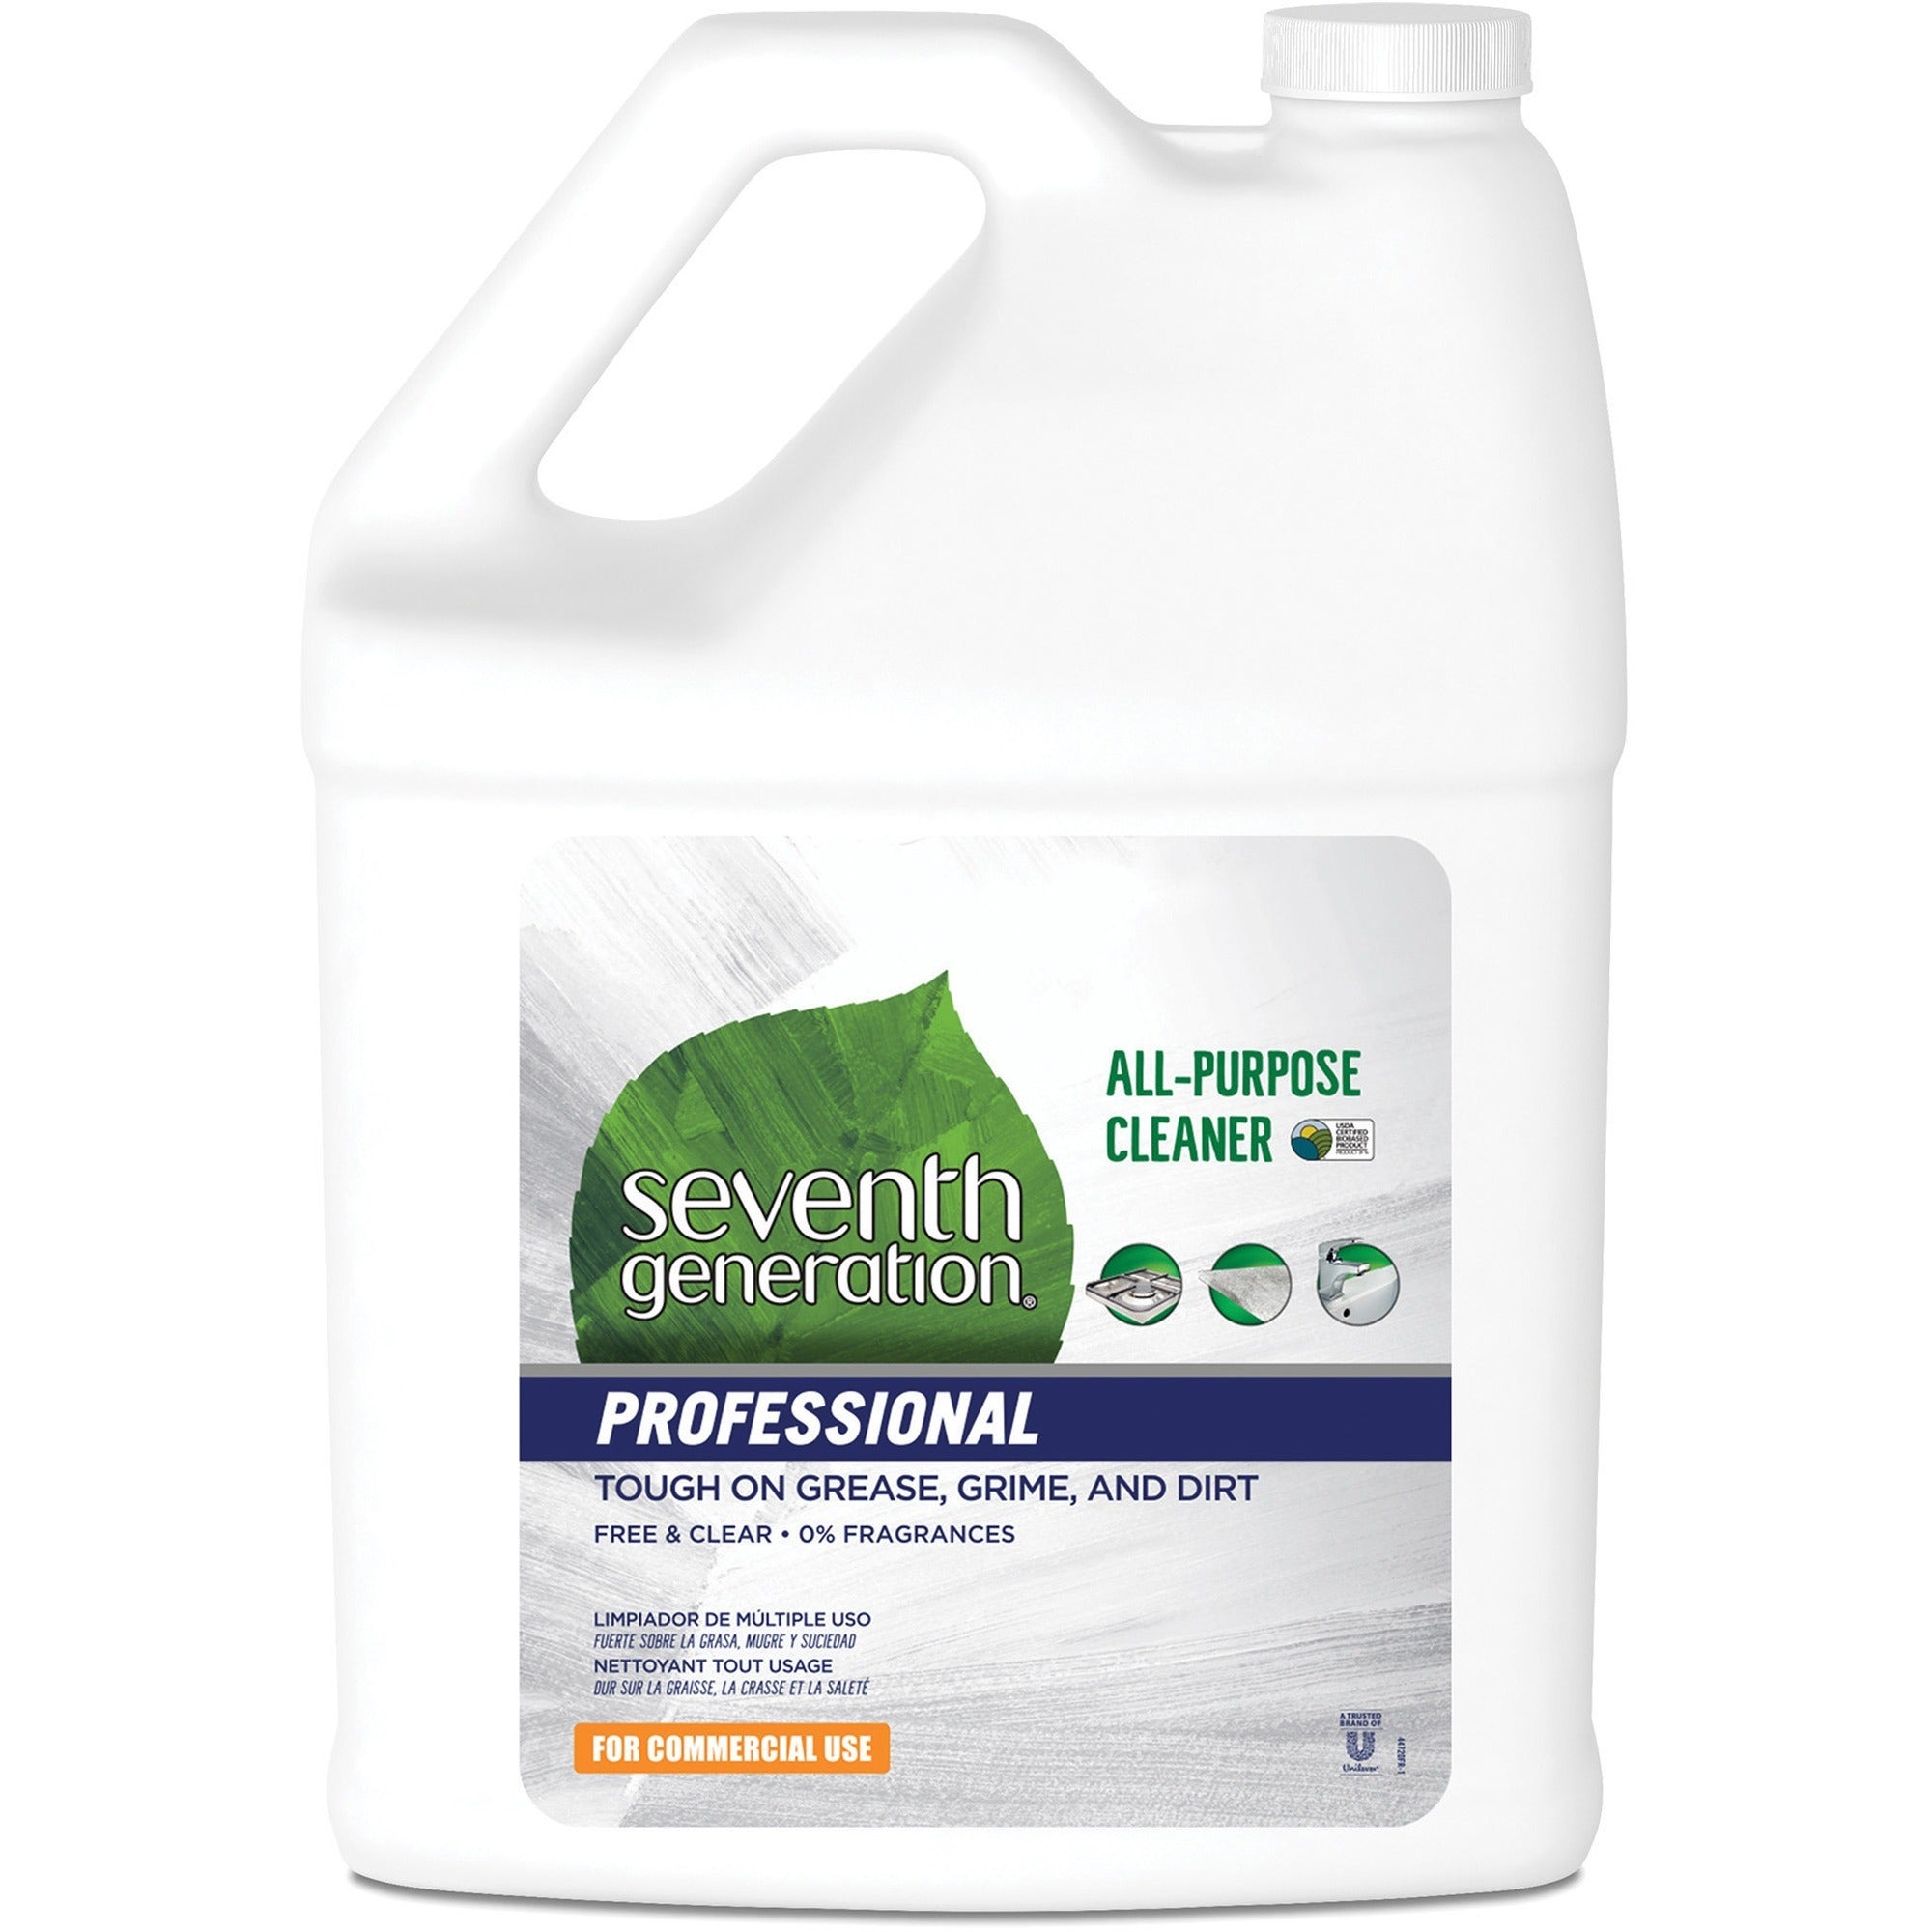 Seventh Generation Professional All-Purpose Cleaner 128oz